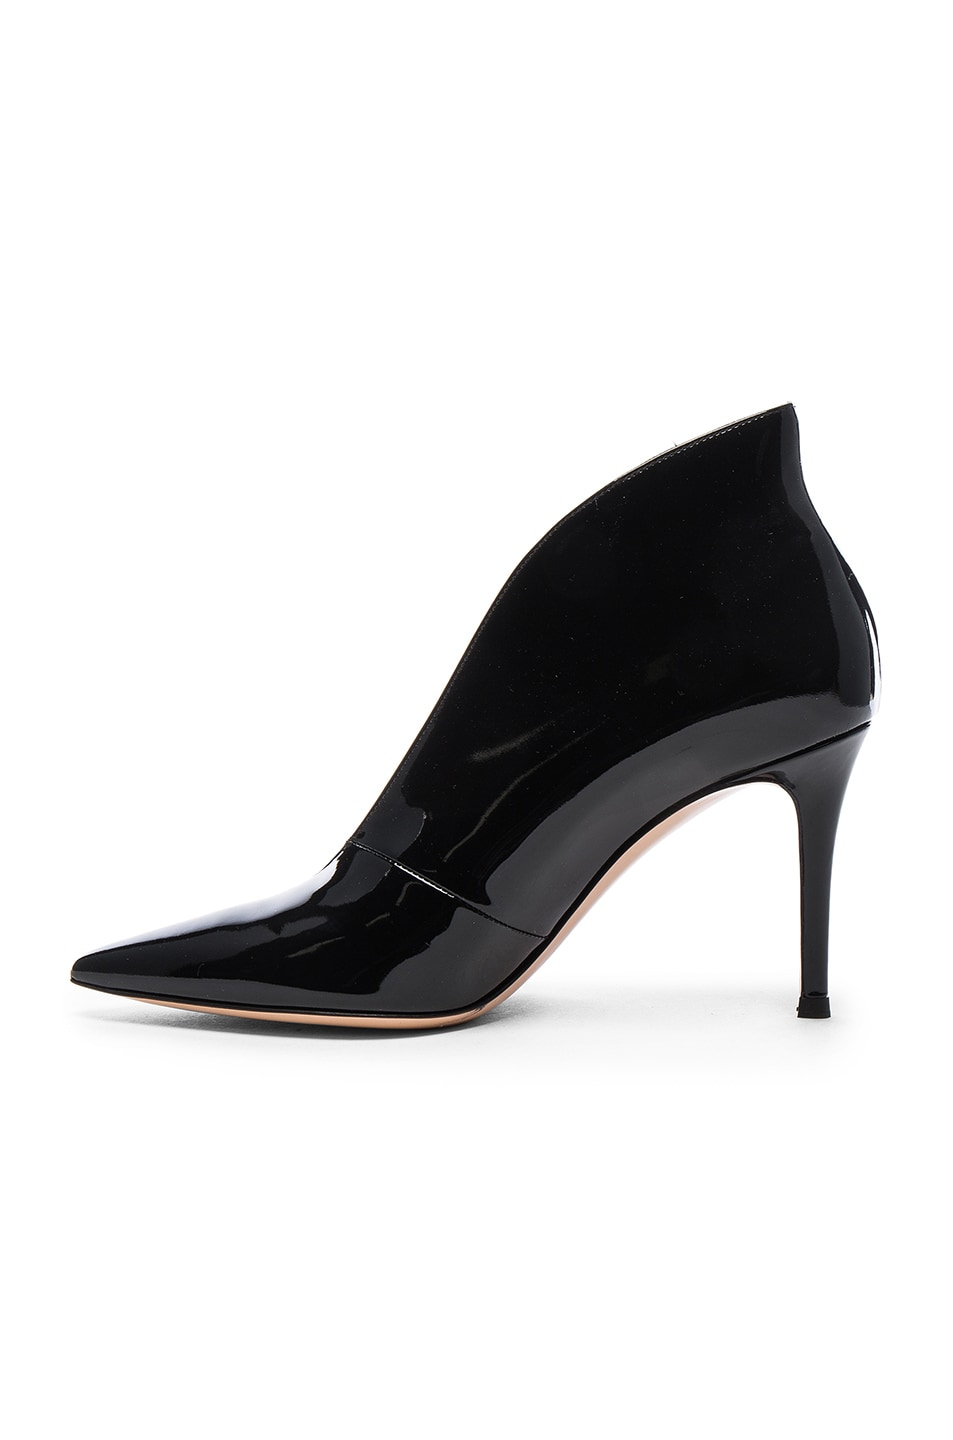 Image 5 of Gianvito Rossi Patent Cut Out Heels in Black